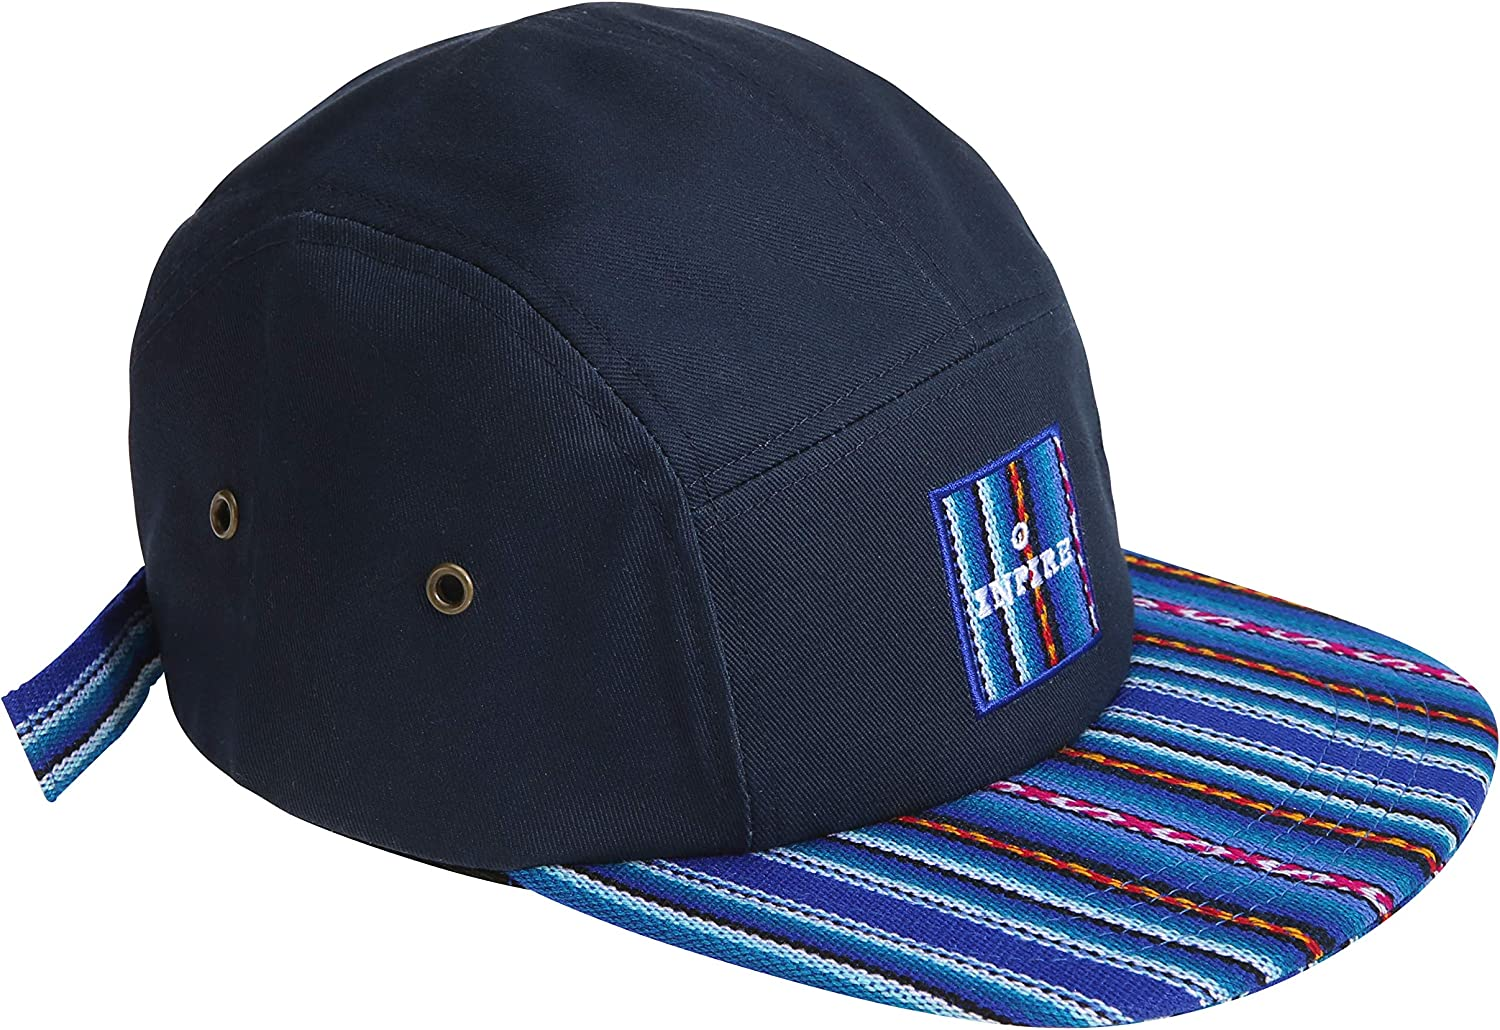 inpireco Boy's Incan Fabric 5 Panel hat in 3 Colors